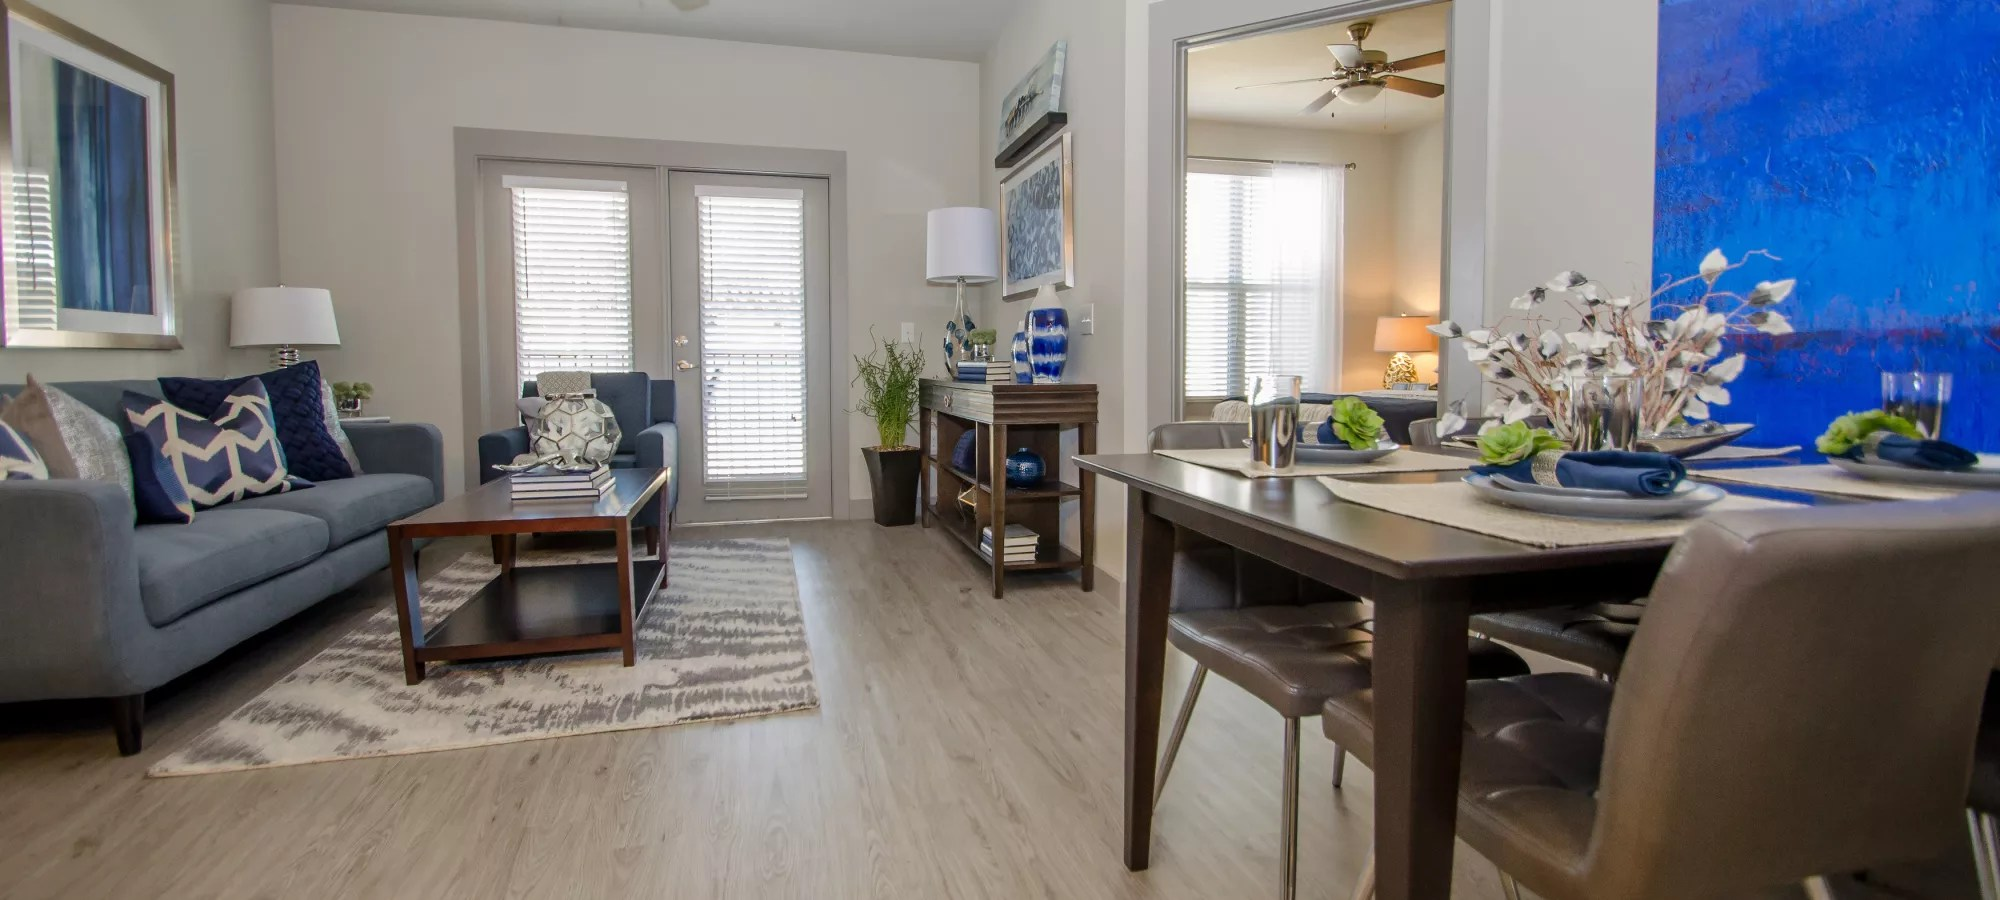 Garage Apartment For Rent In Dallas Dallas Apartments Townhomes For Rent Domain At Midtown Park